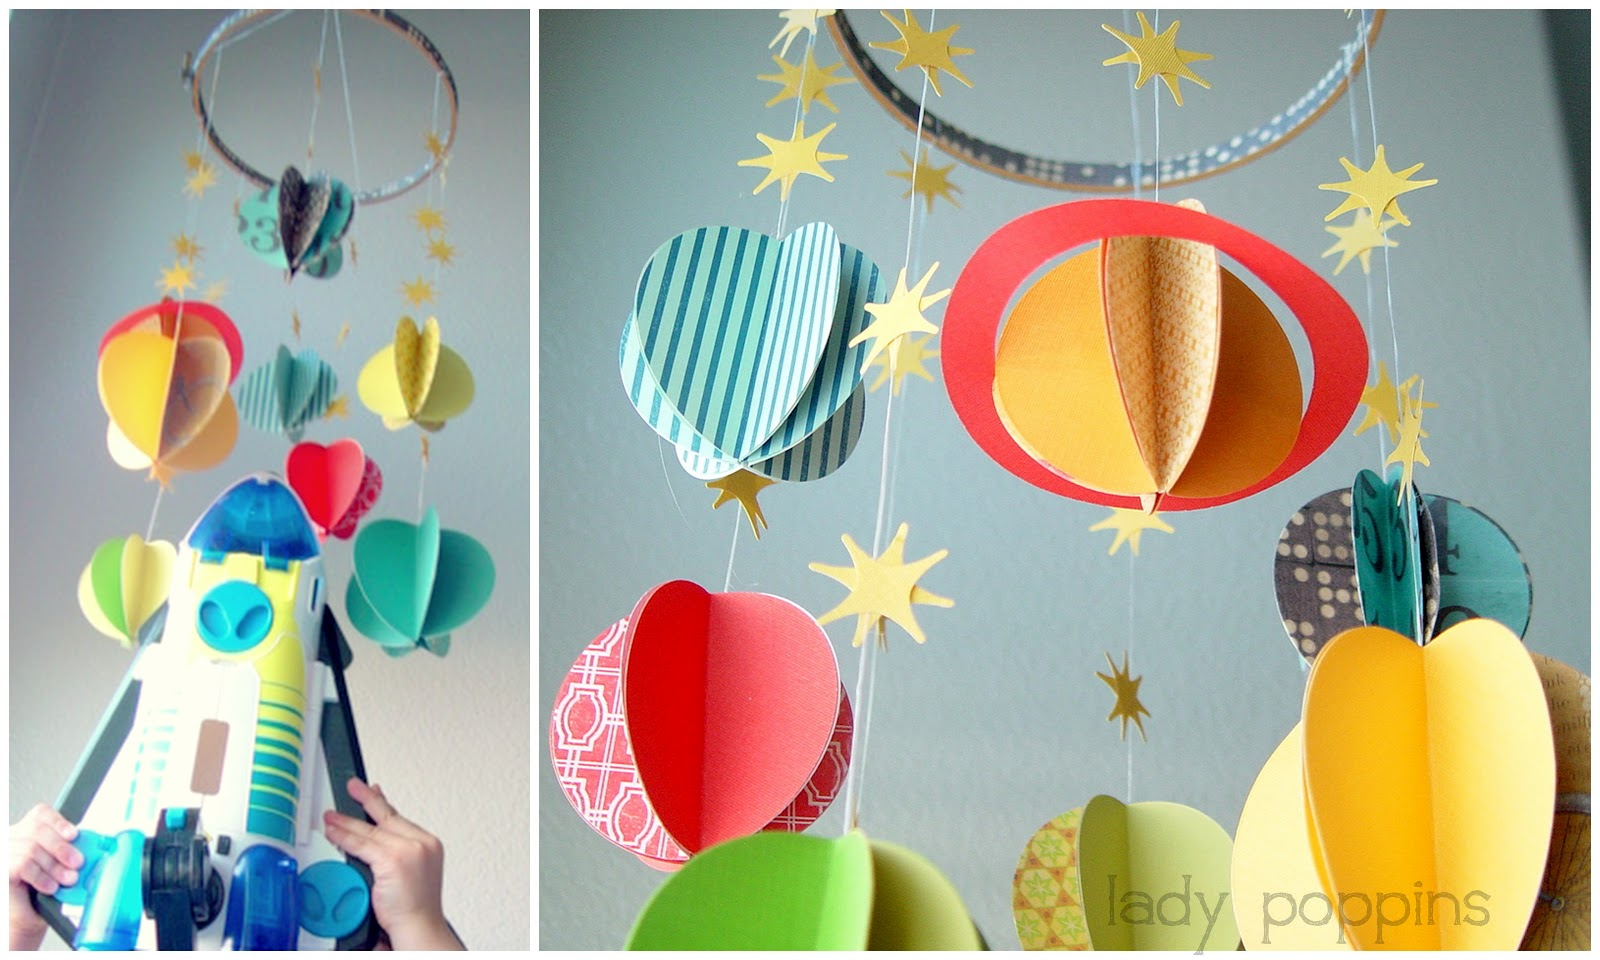 DIY Solar System Mobile & Lady Poppins: DIY Solar System Mobile